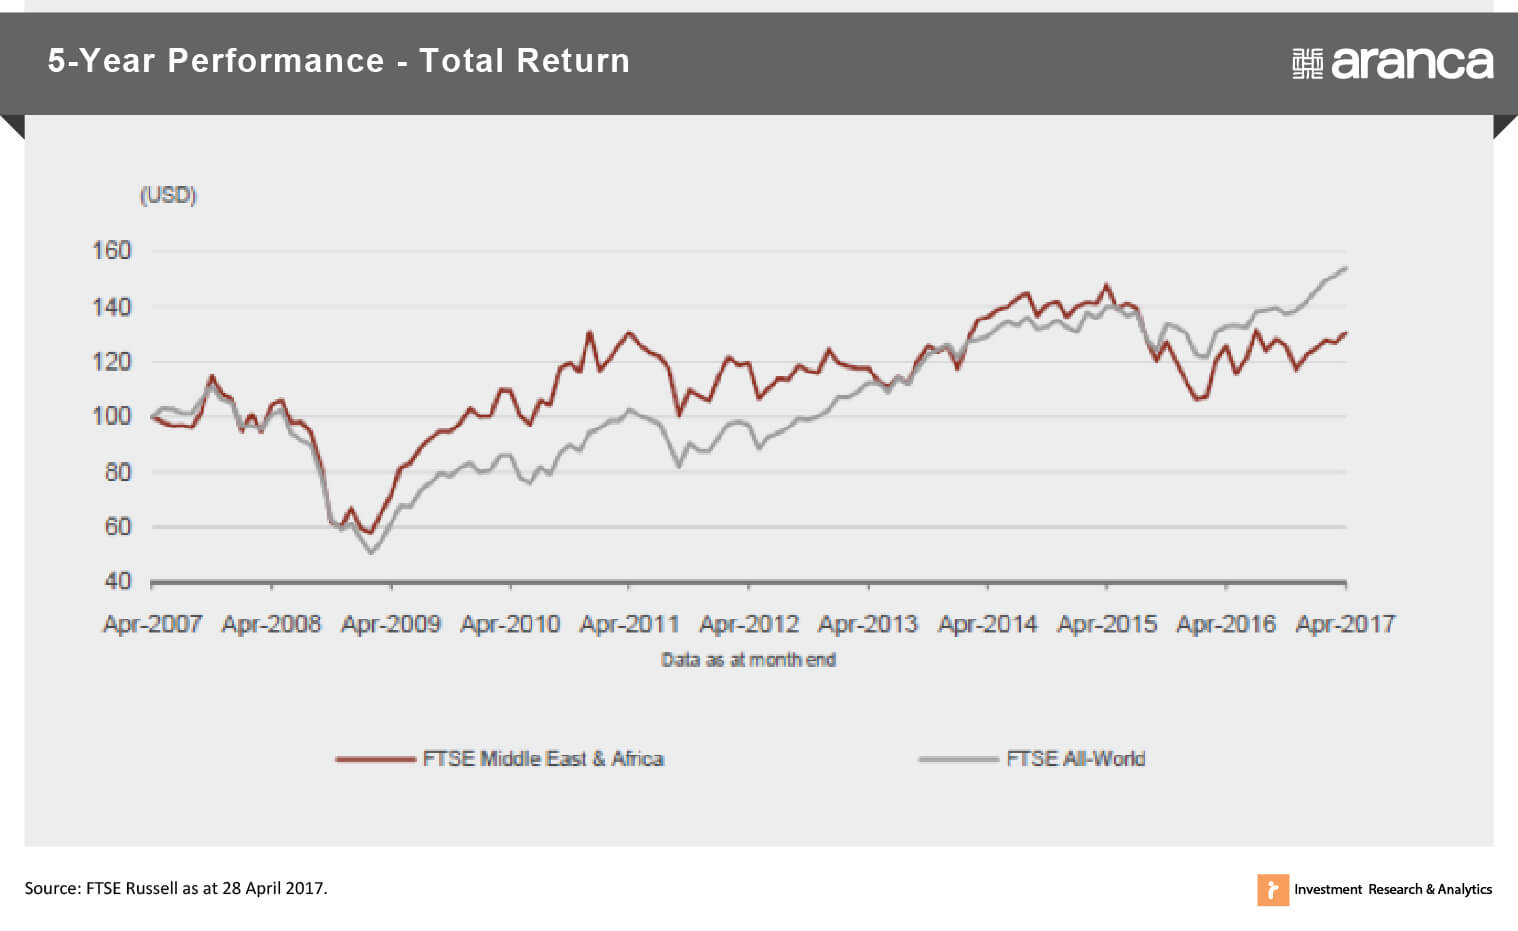 5 Year Performance - Total Returns